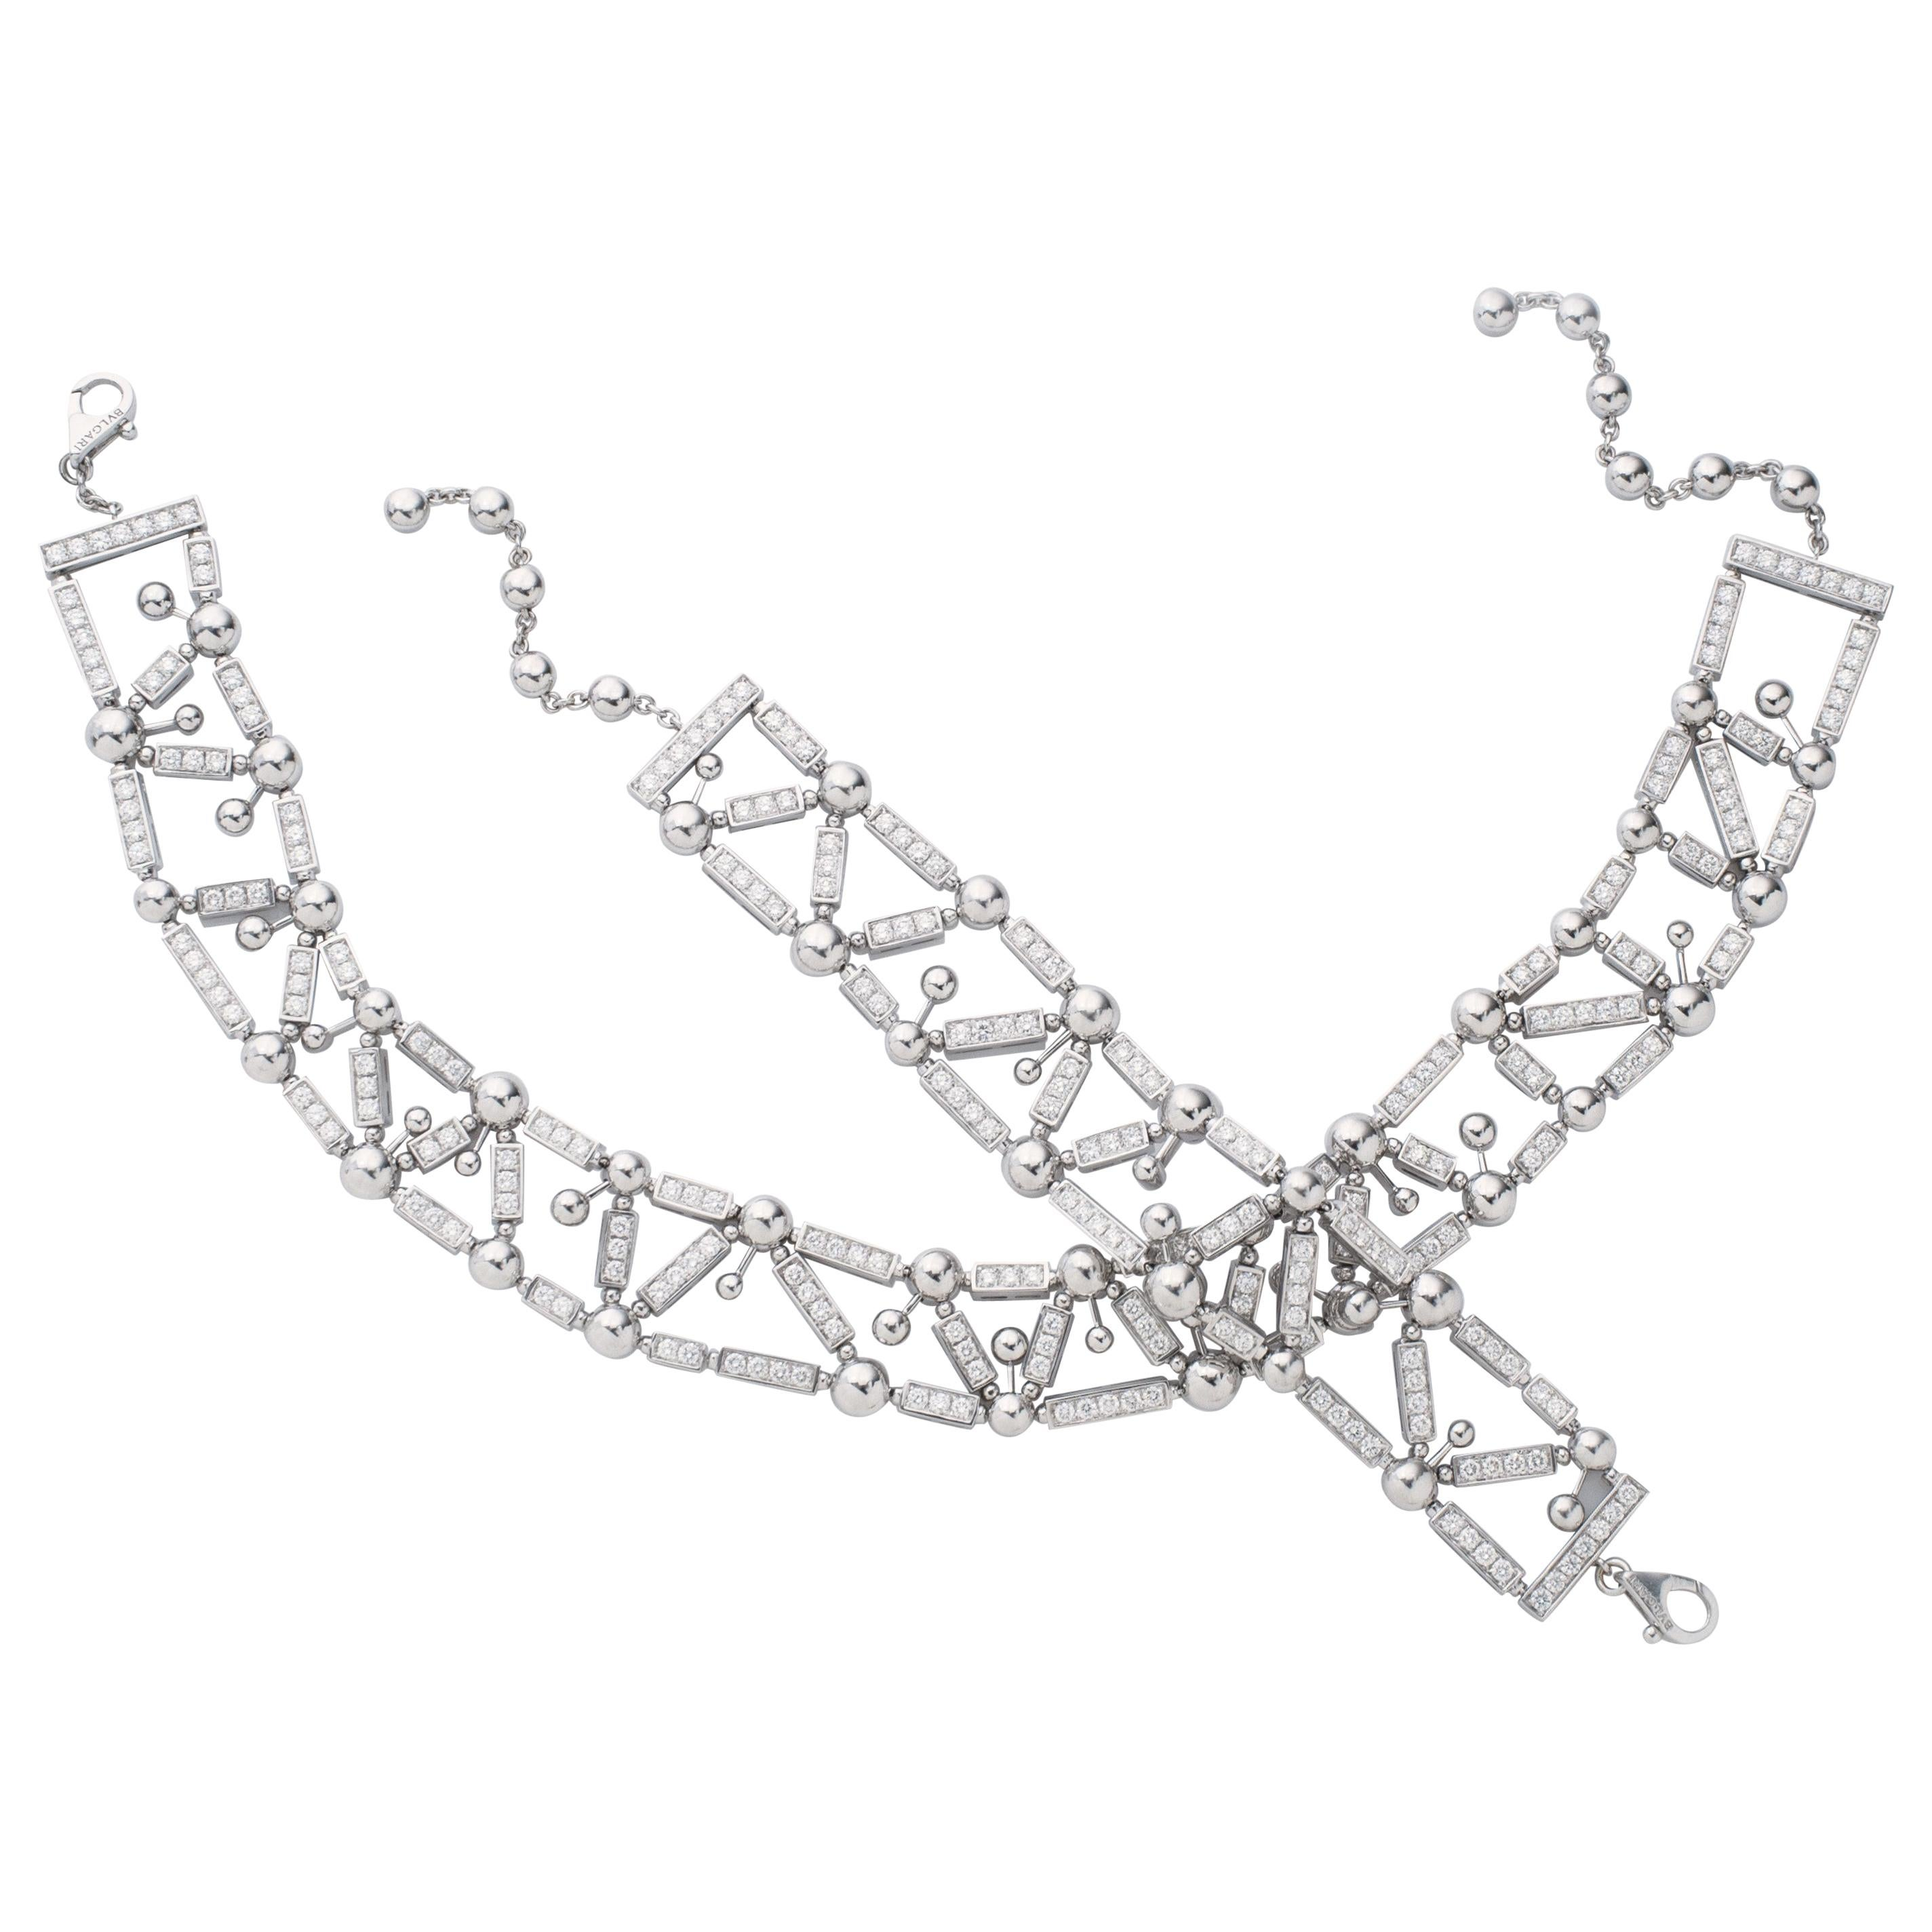 Bvlgari Fireworks Collection Diamond Choker Necklace and Bracelet in 18kw Gold